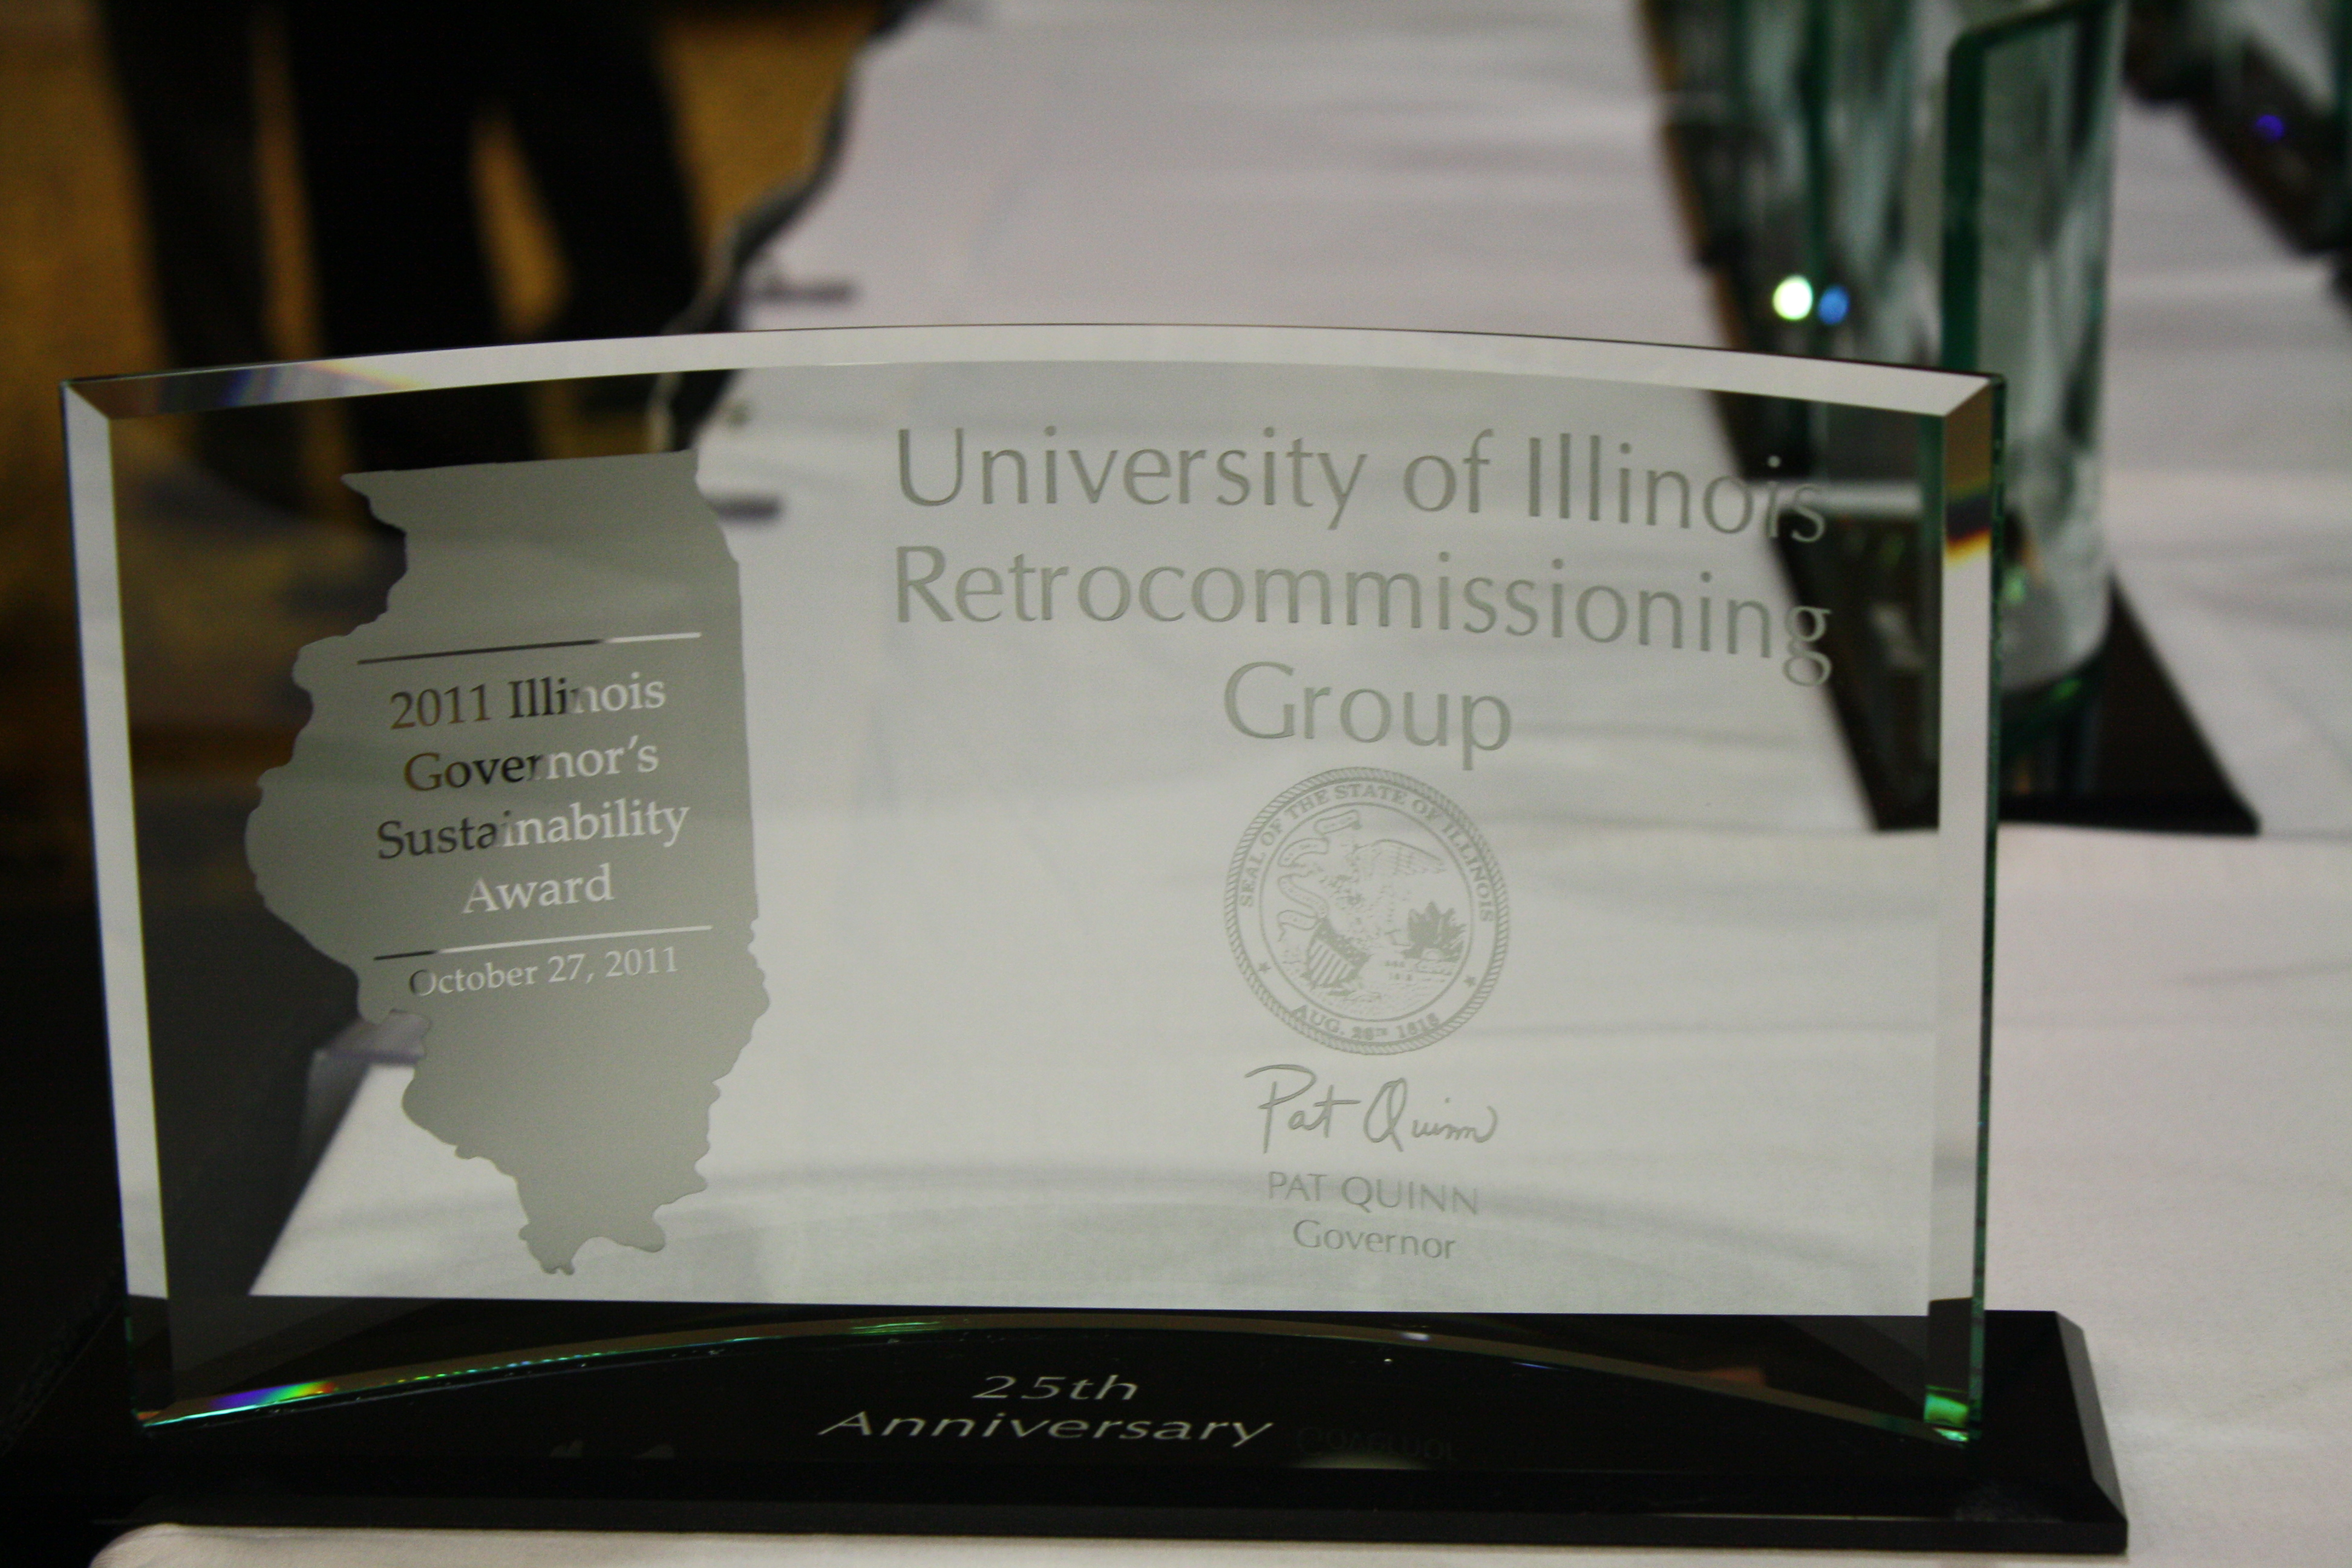 One of the 2011 Governor's Sustainability Awards